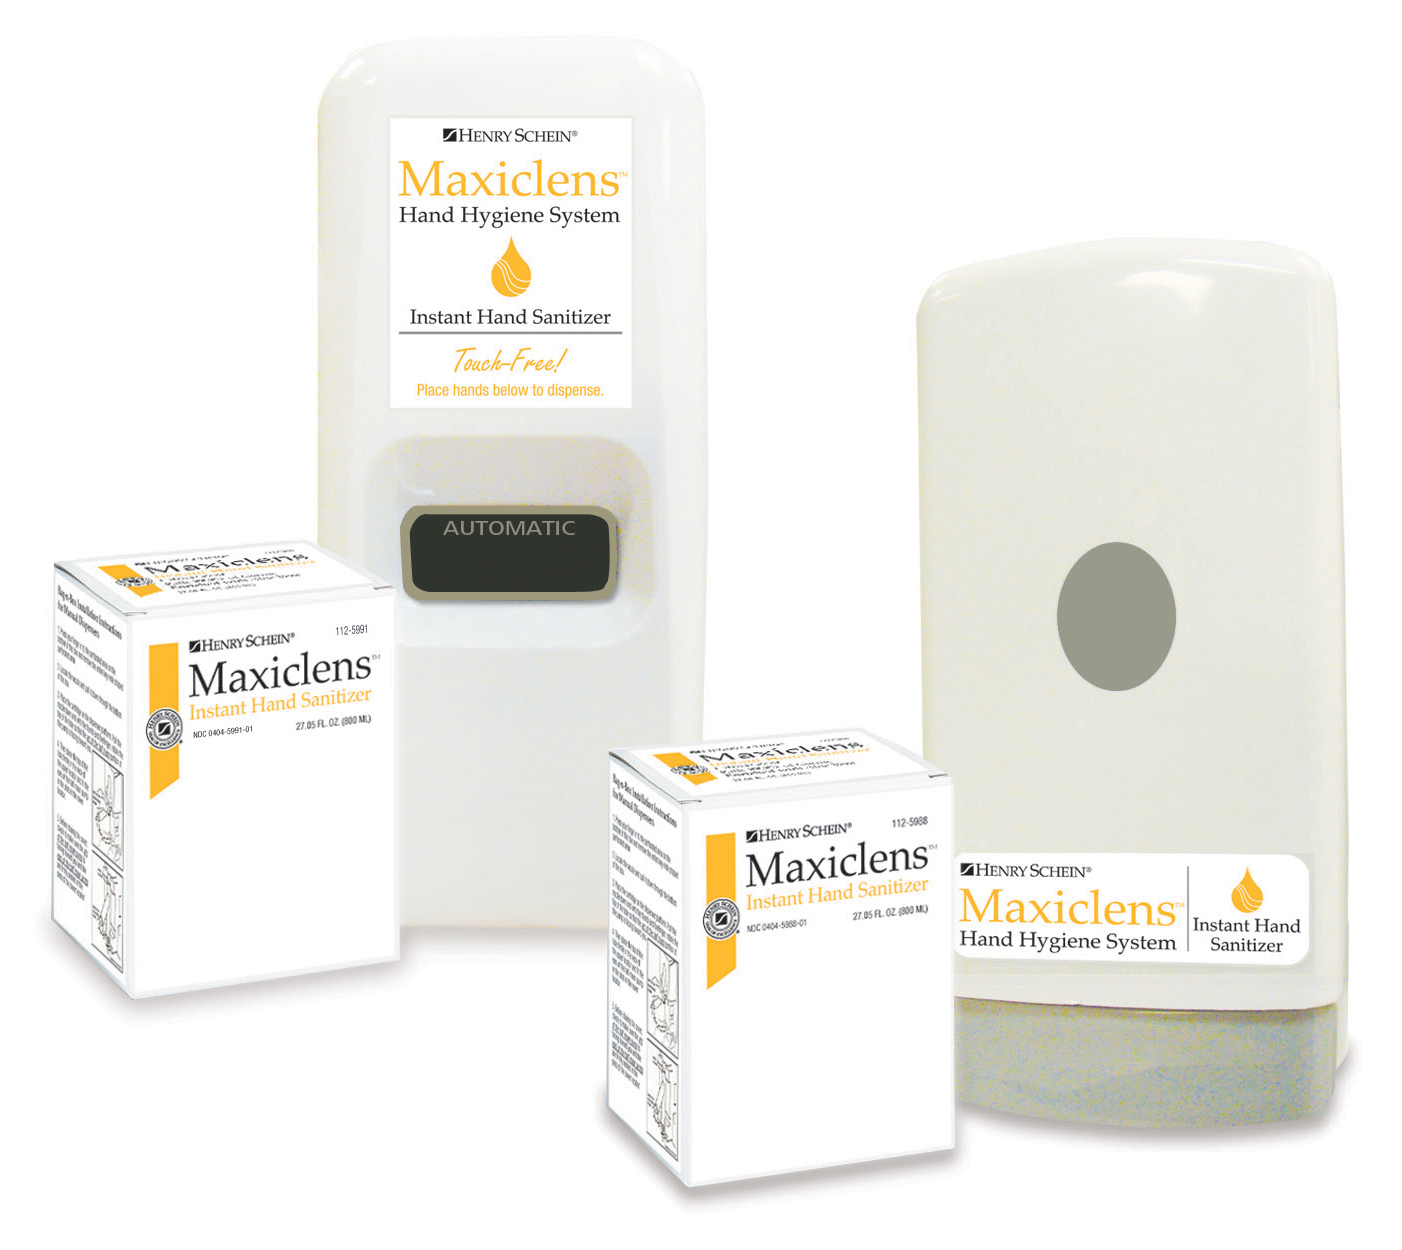 Maxiclens Instant Hand Sanitizer and Dispensers